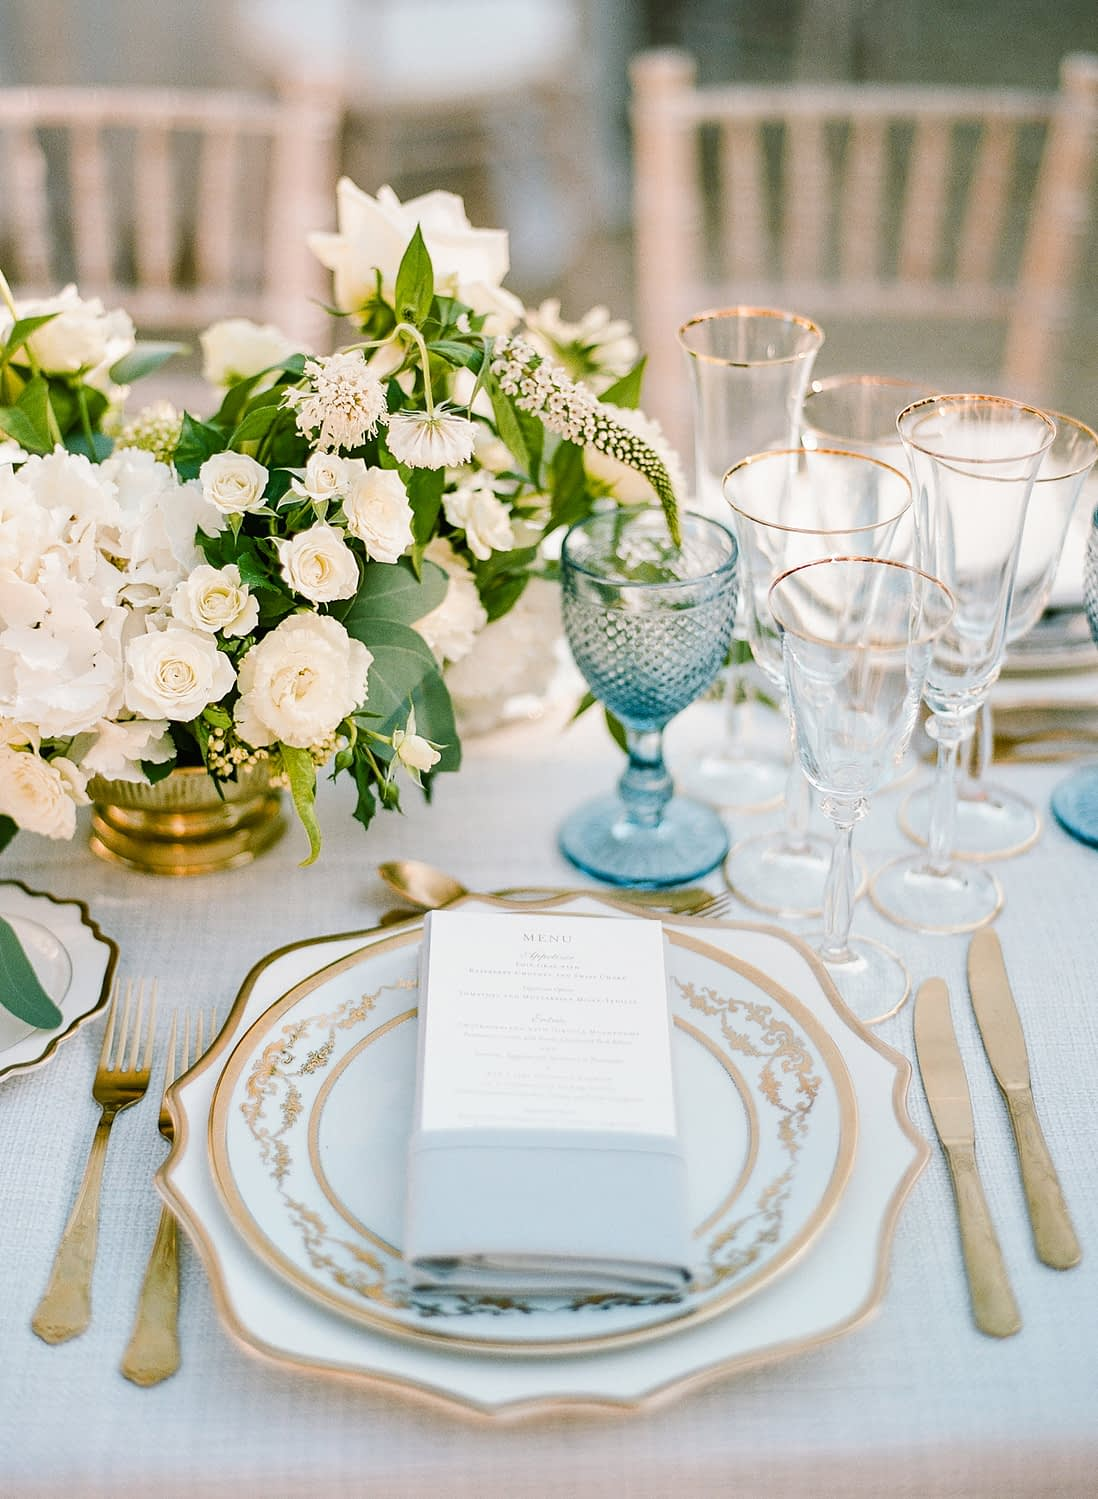 "Image by <a class=""text-taupe-100"" href=""http://rebeccayalephotography.com"" target=""_blank"">Rebecca Yale Photography</a> 